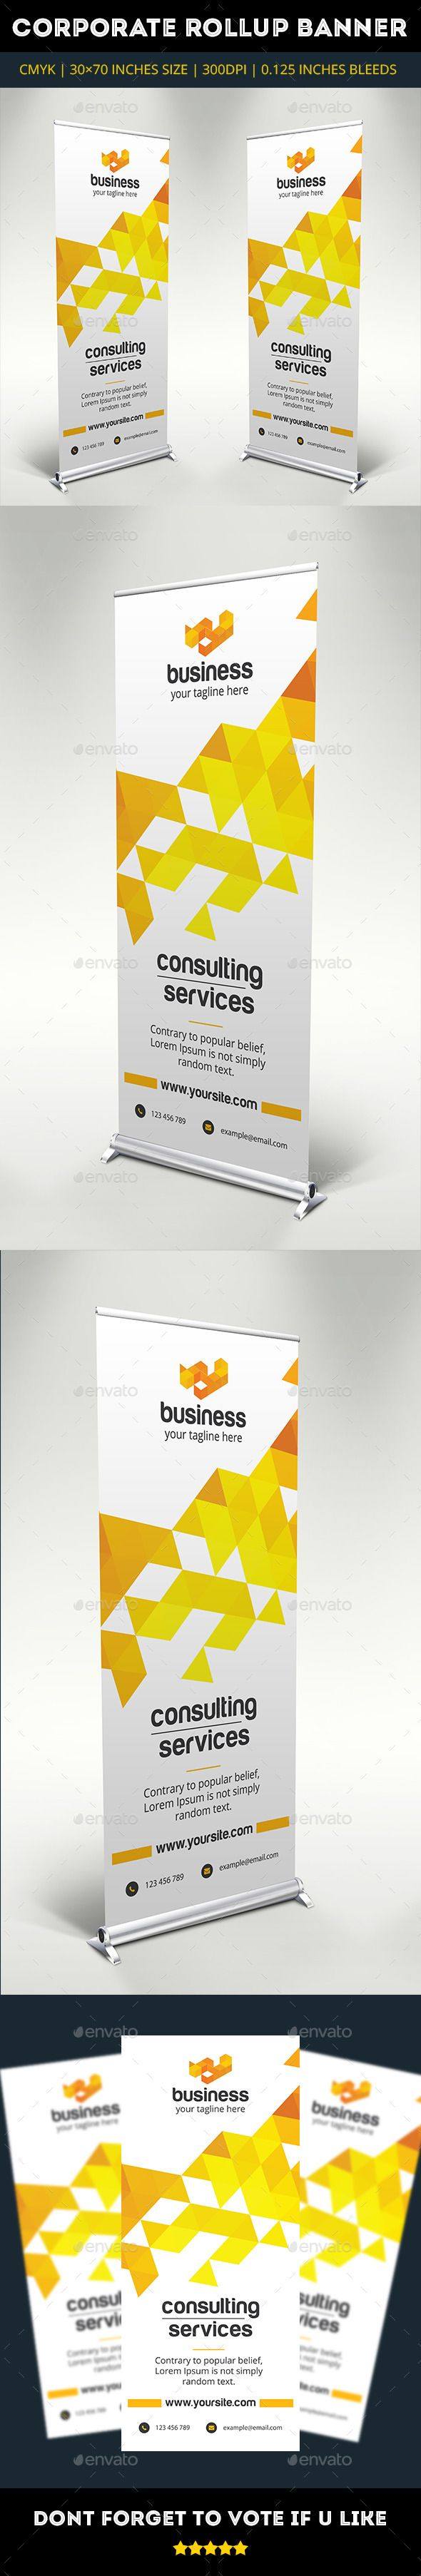 Corporate Rollup Banner Template #design Download: http://graphicriver.net/item/corporate-rollup-banner/10483108?ref=ksioks